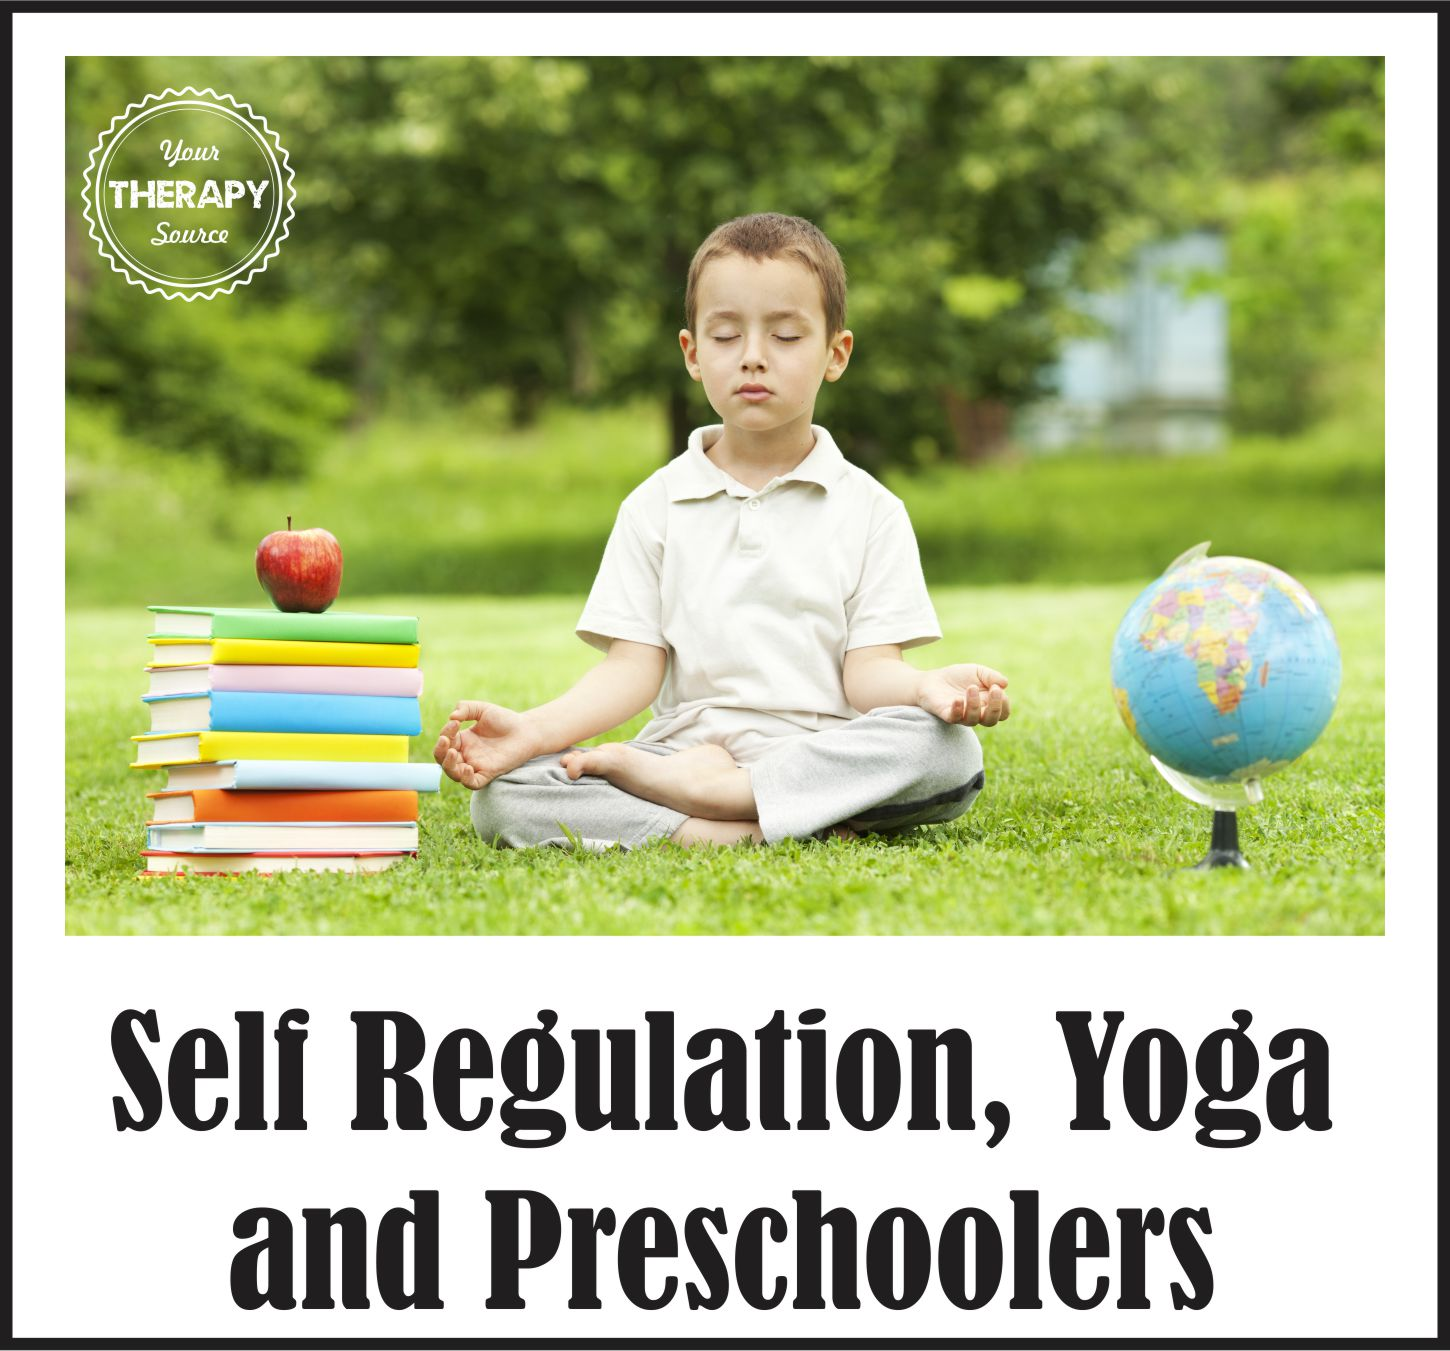 A yearlong study was published on yoga for preschoolers to help with self-regulation. Read the results and suggestions at YourTherapySource.